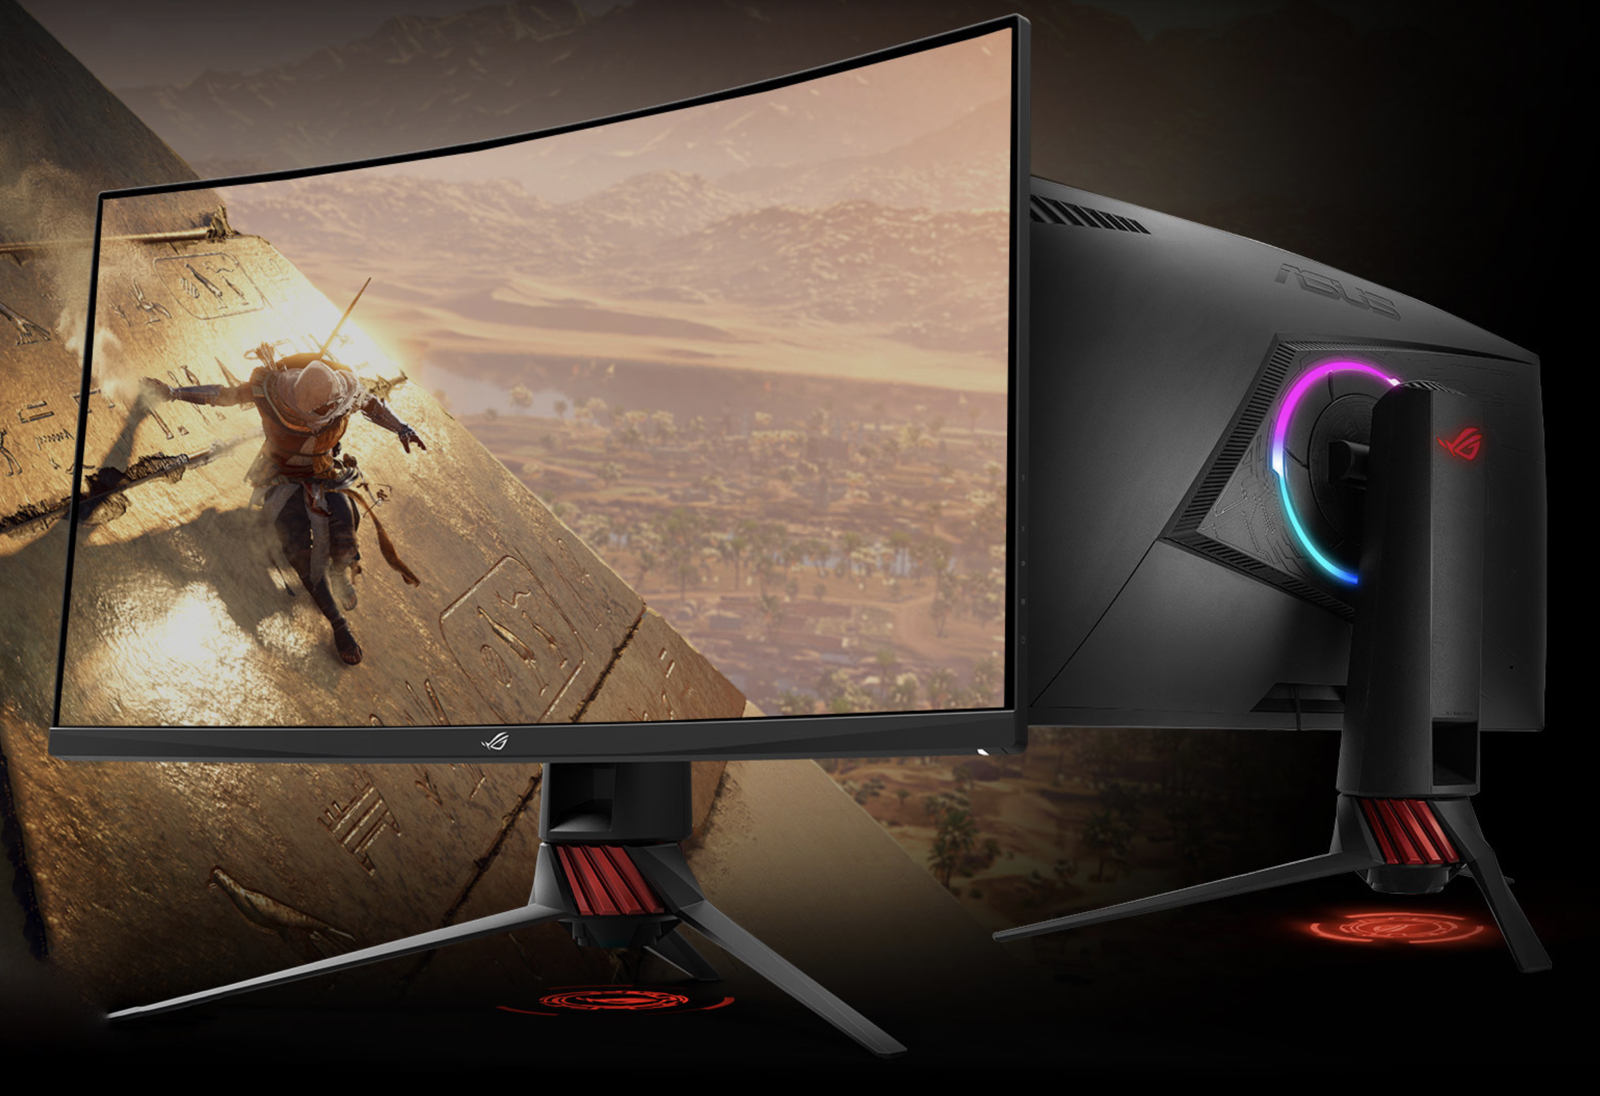 ASUS Unwraps ROG Strix XG32VQ And XG35VQ Curved Gaming Monitors With AMD FreeSync